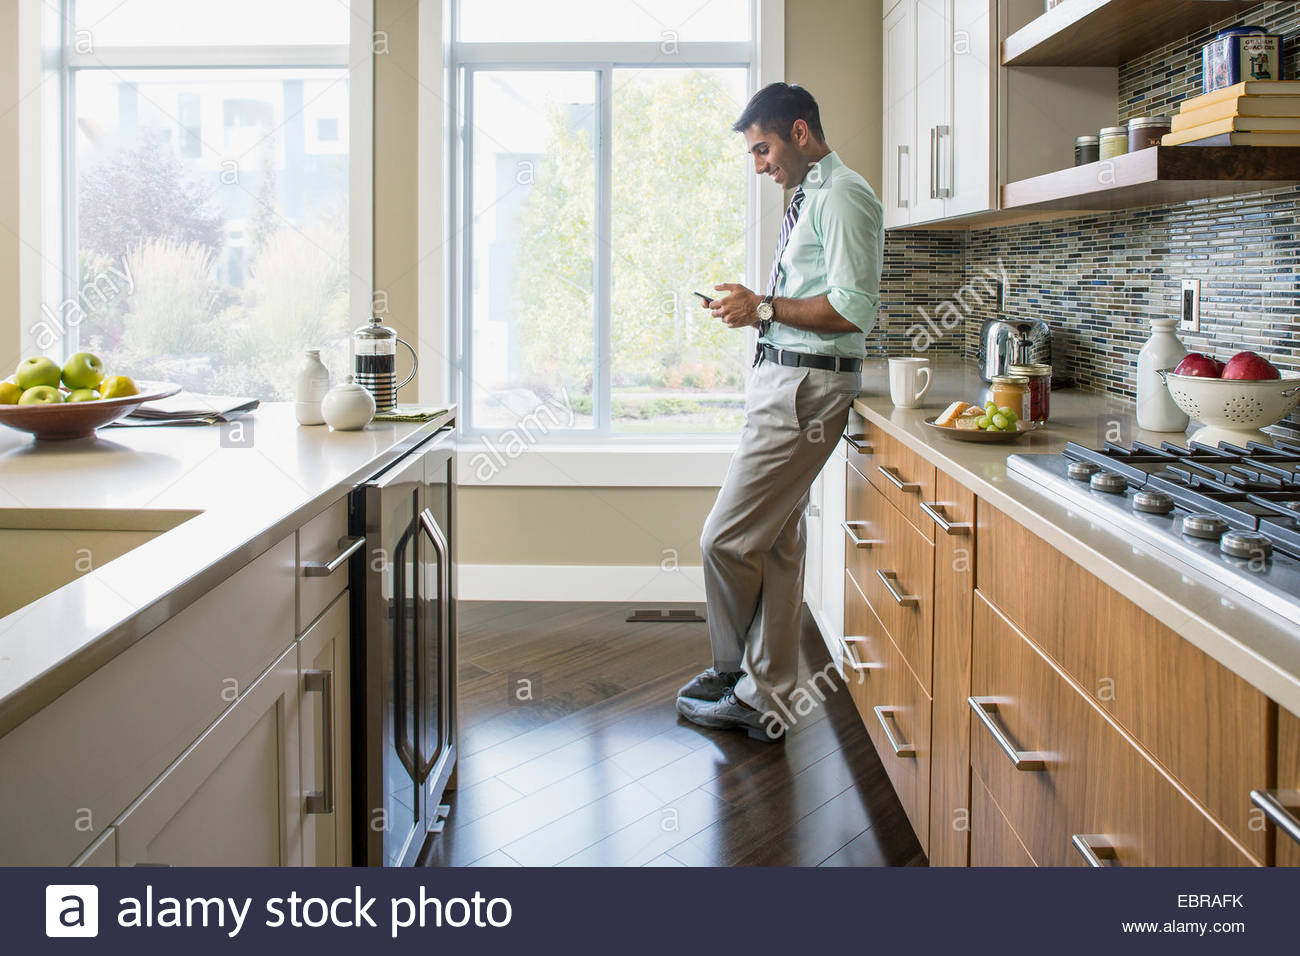 Man text messaging on cell phone in kitchen - Stock Image